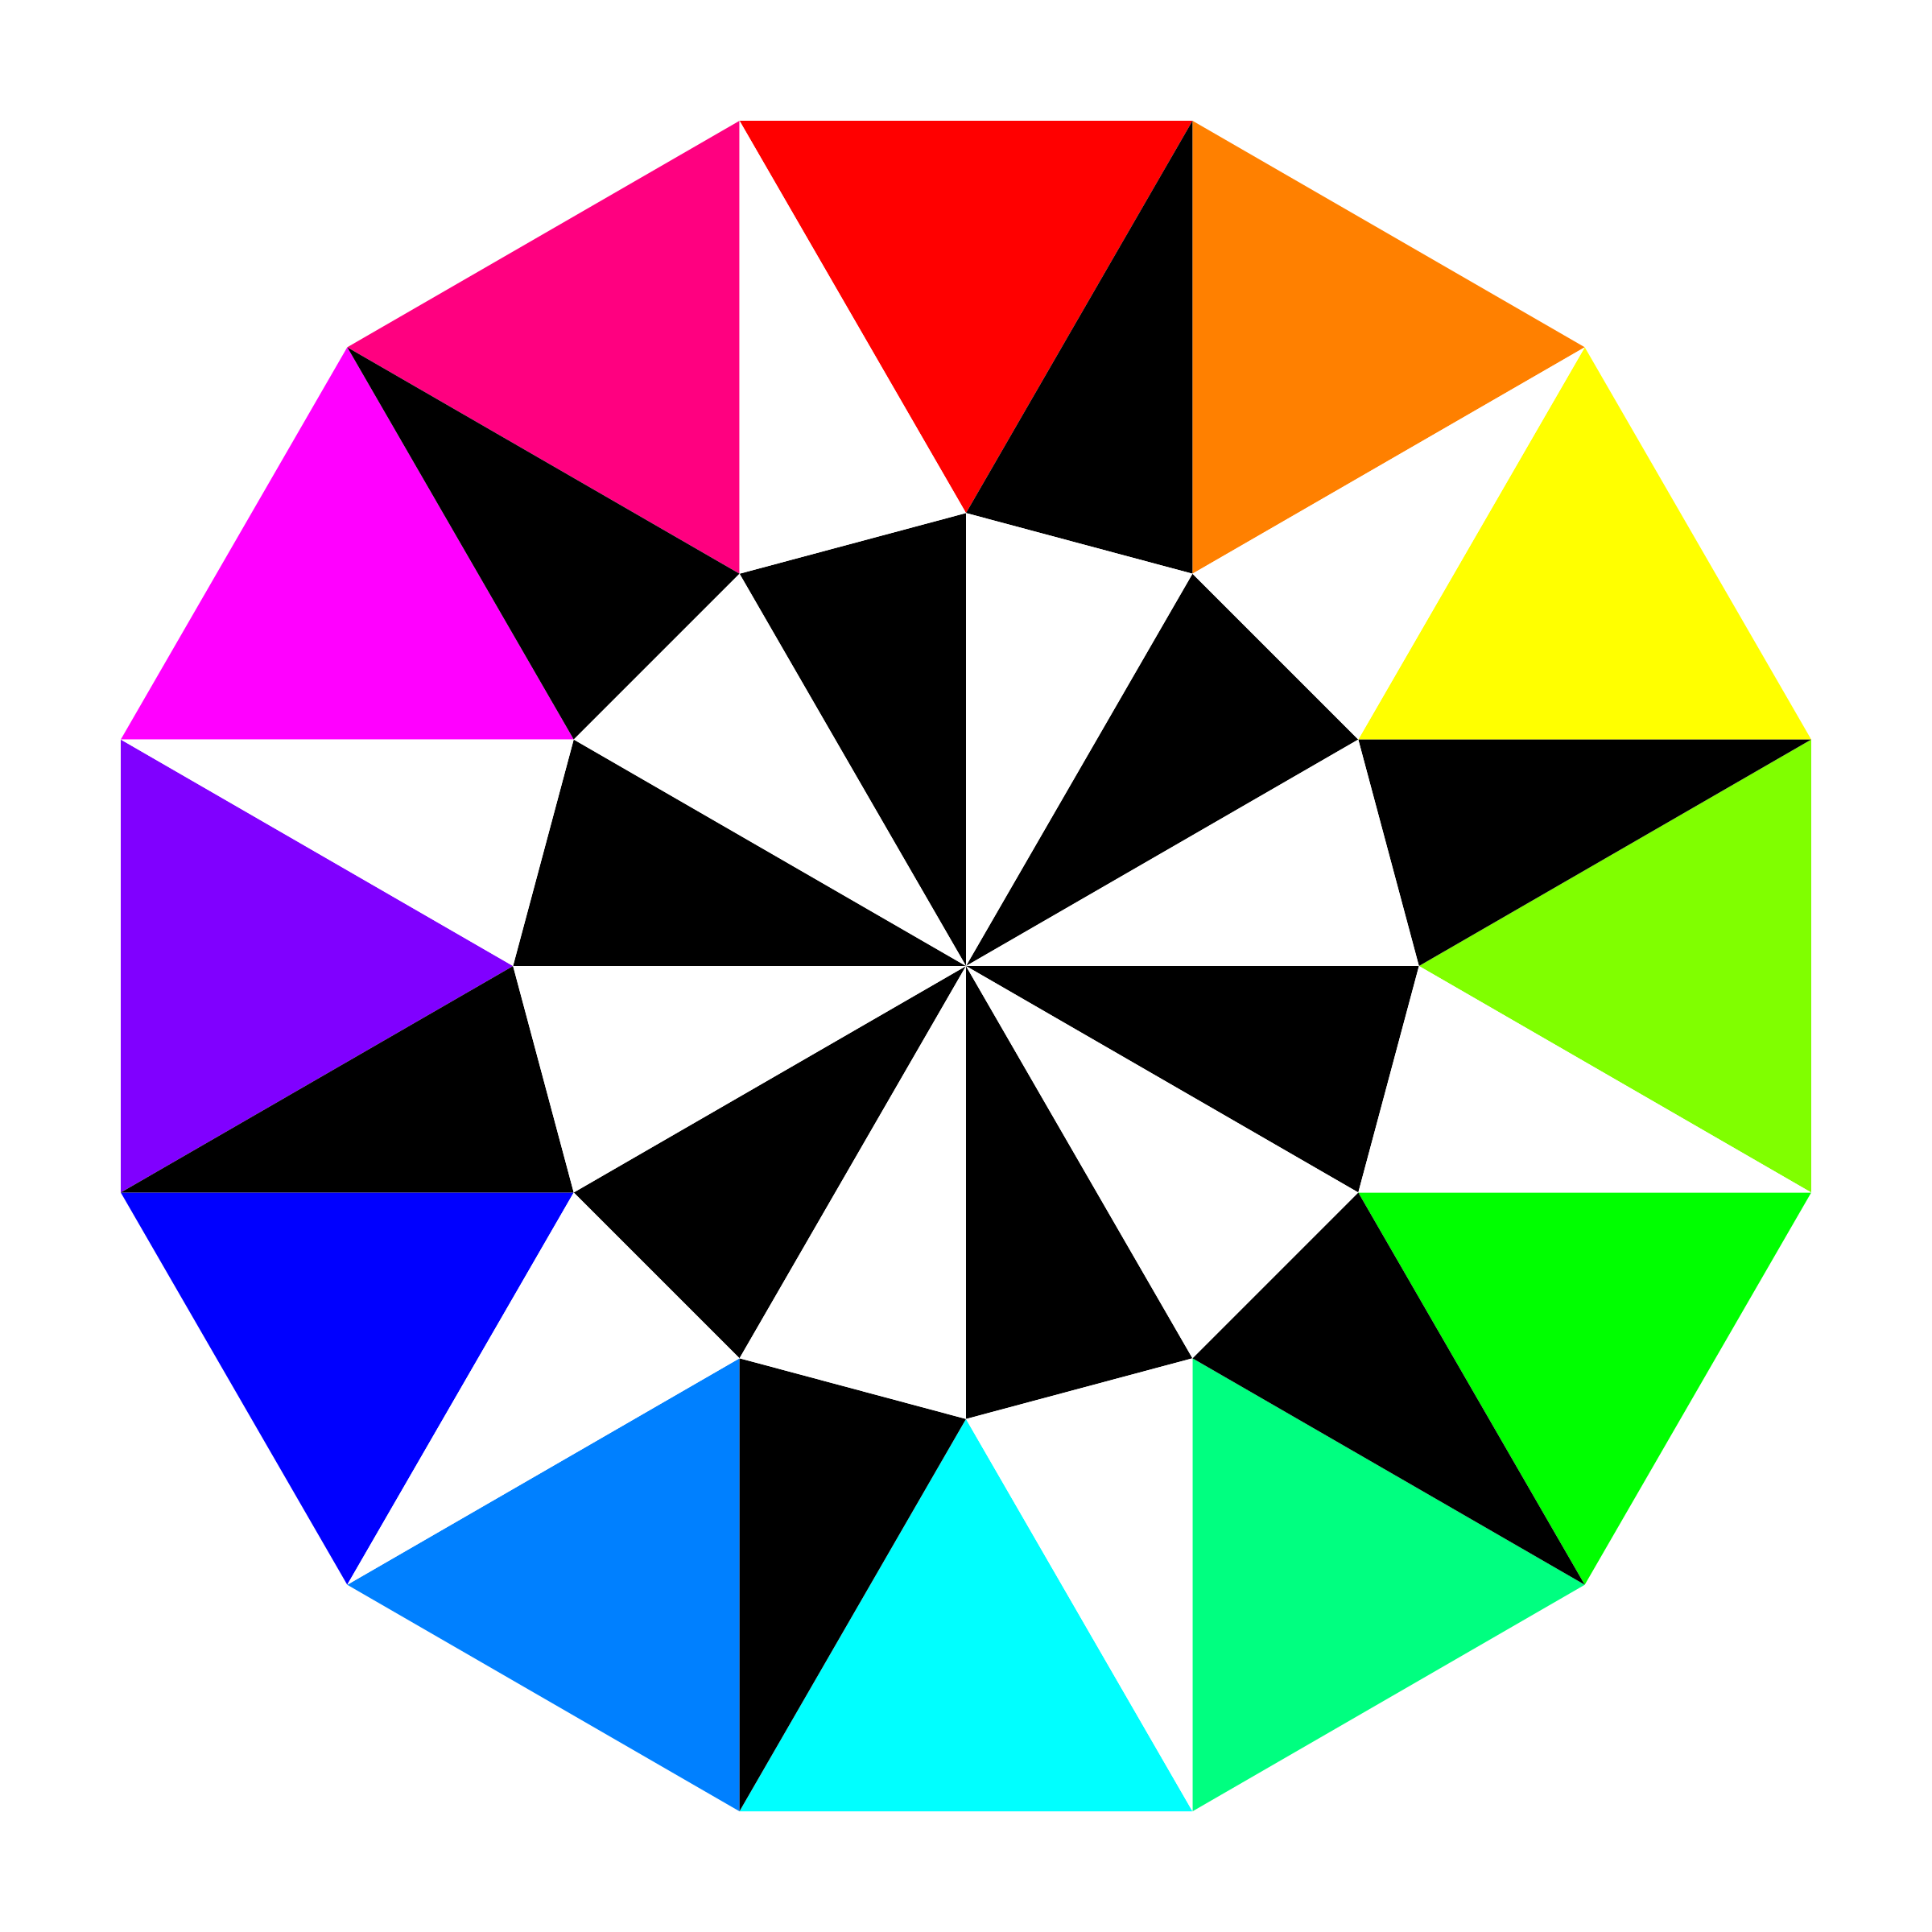 unnamed dodecagon by 10binary